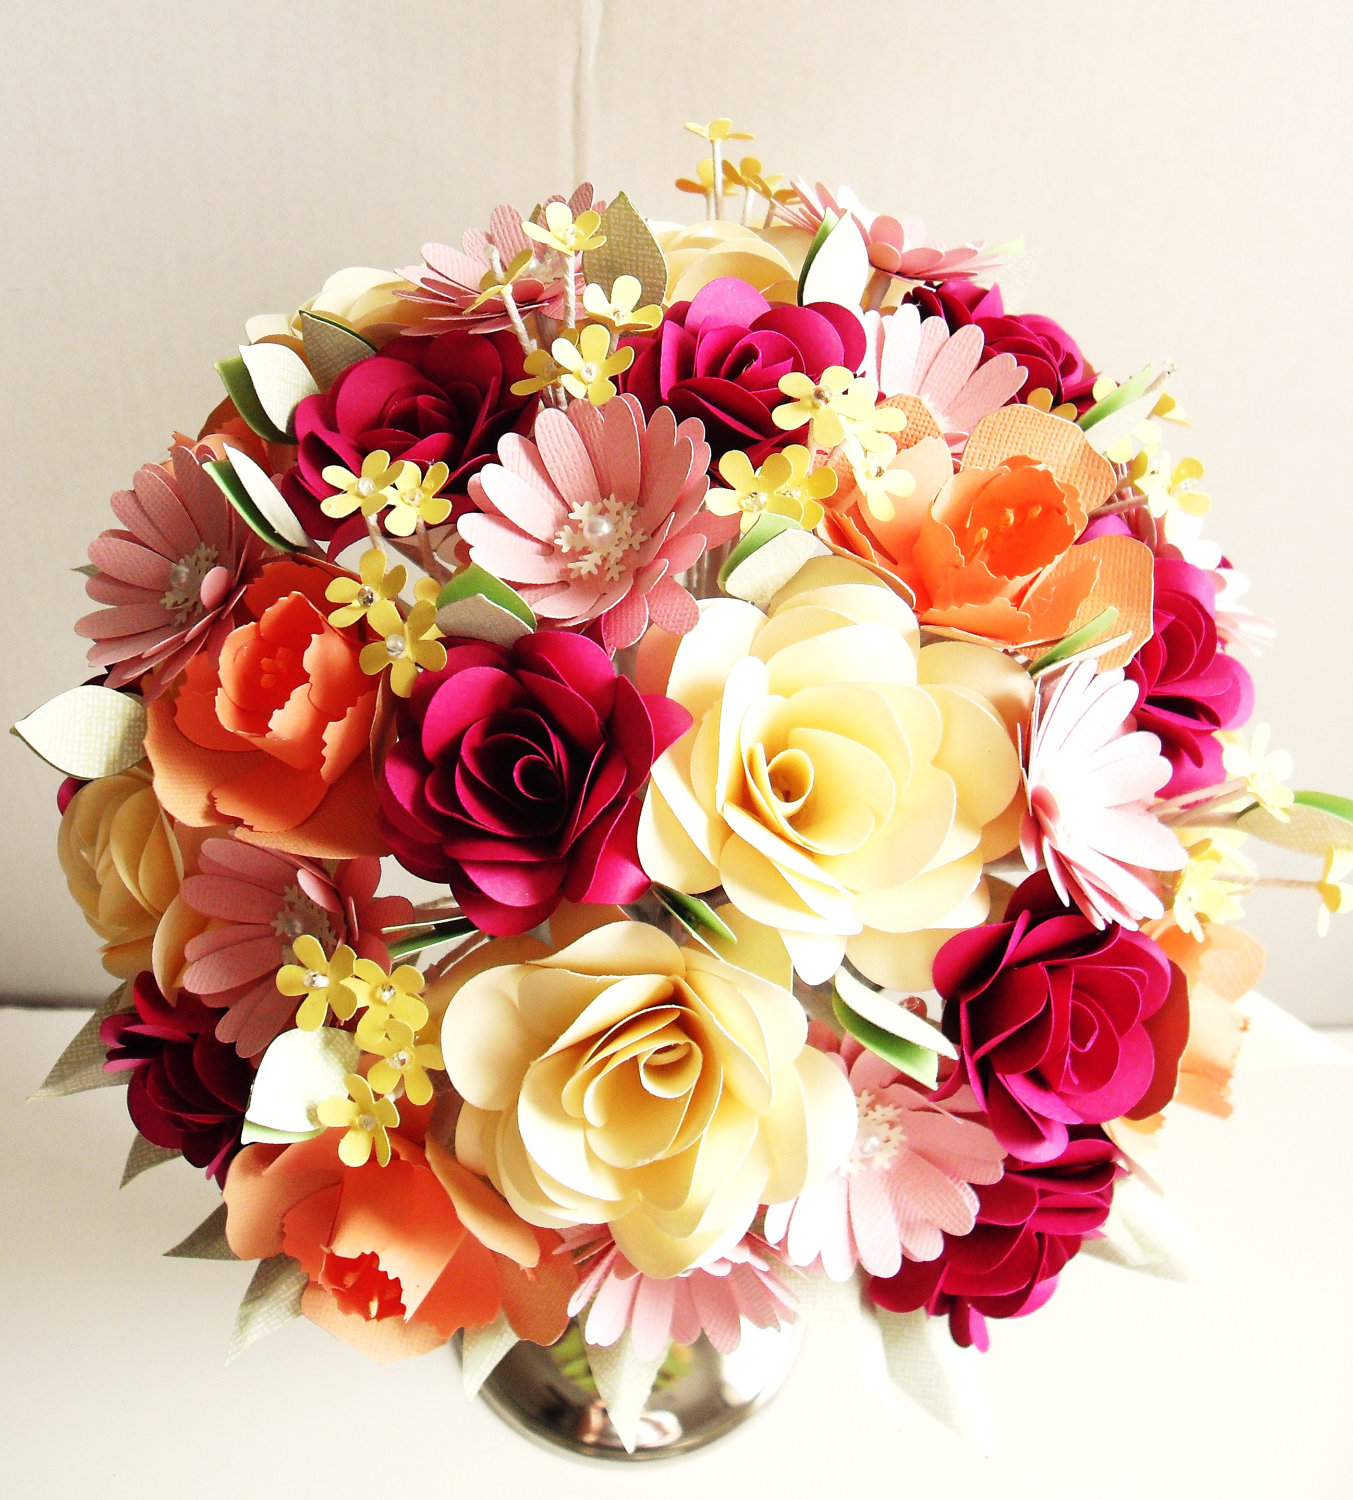 Wedding Bouquet Traditional Flowers : Images about paper flowers on